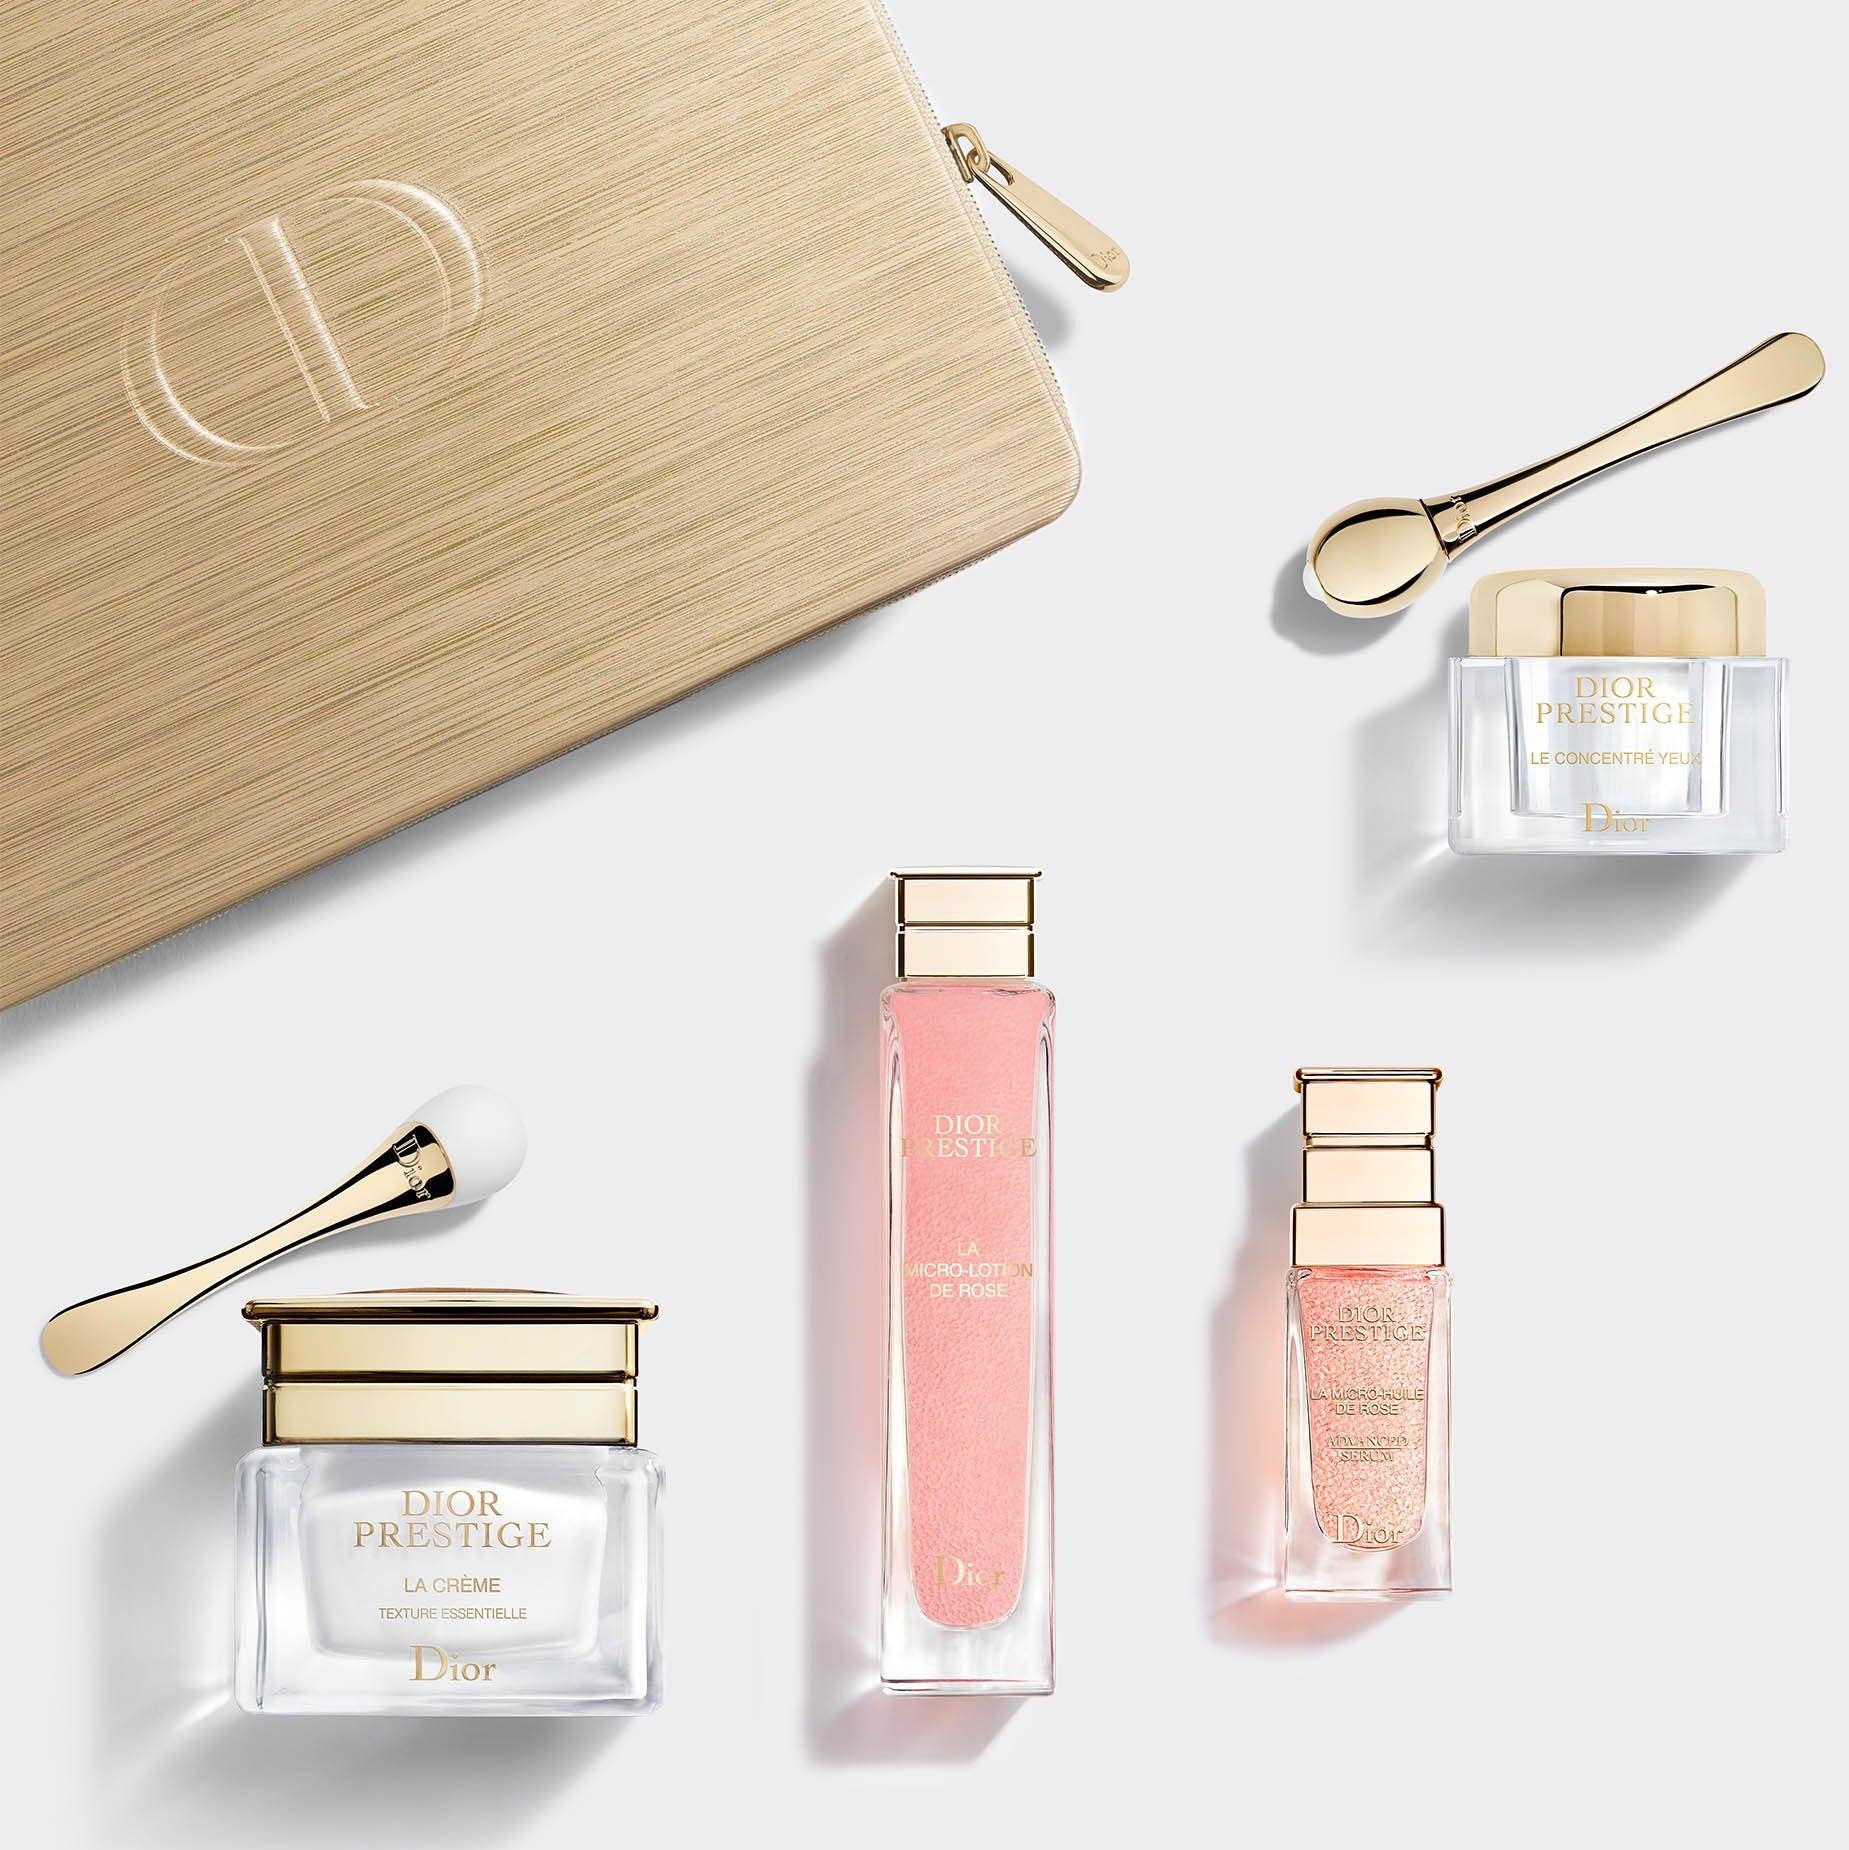 DIOR PRESTIGE | Regenerating and Perfecting Discovery Ritual - La Micro-Lotion de Rose, La Micro-Huile de Rose Advanced Serum, Le Concentré Yeux, La Crème, Applicators